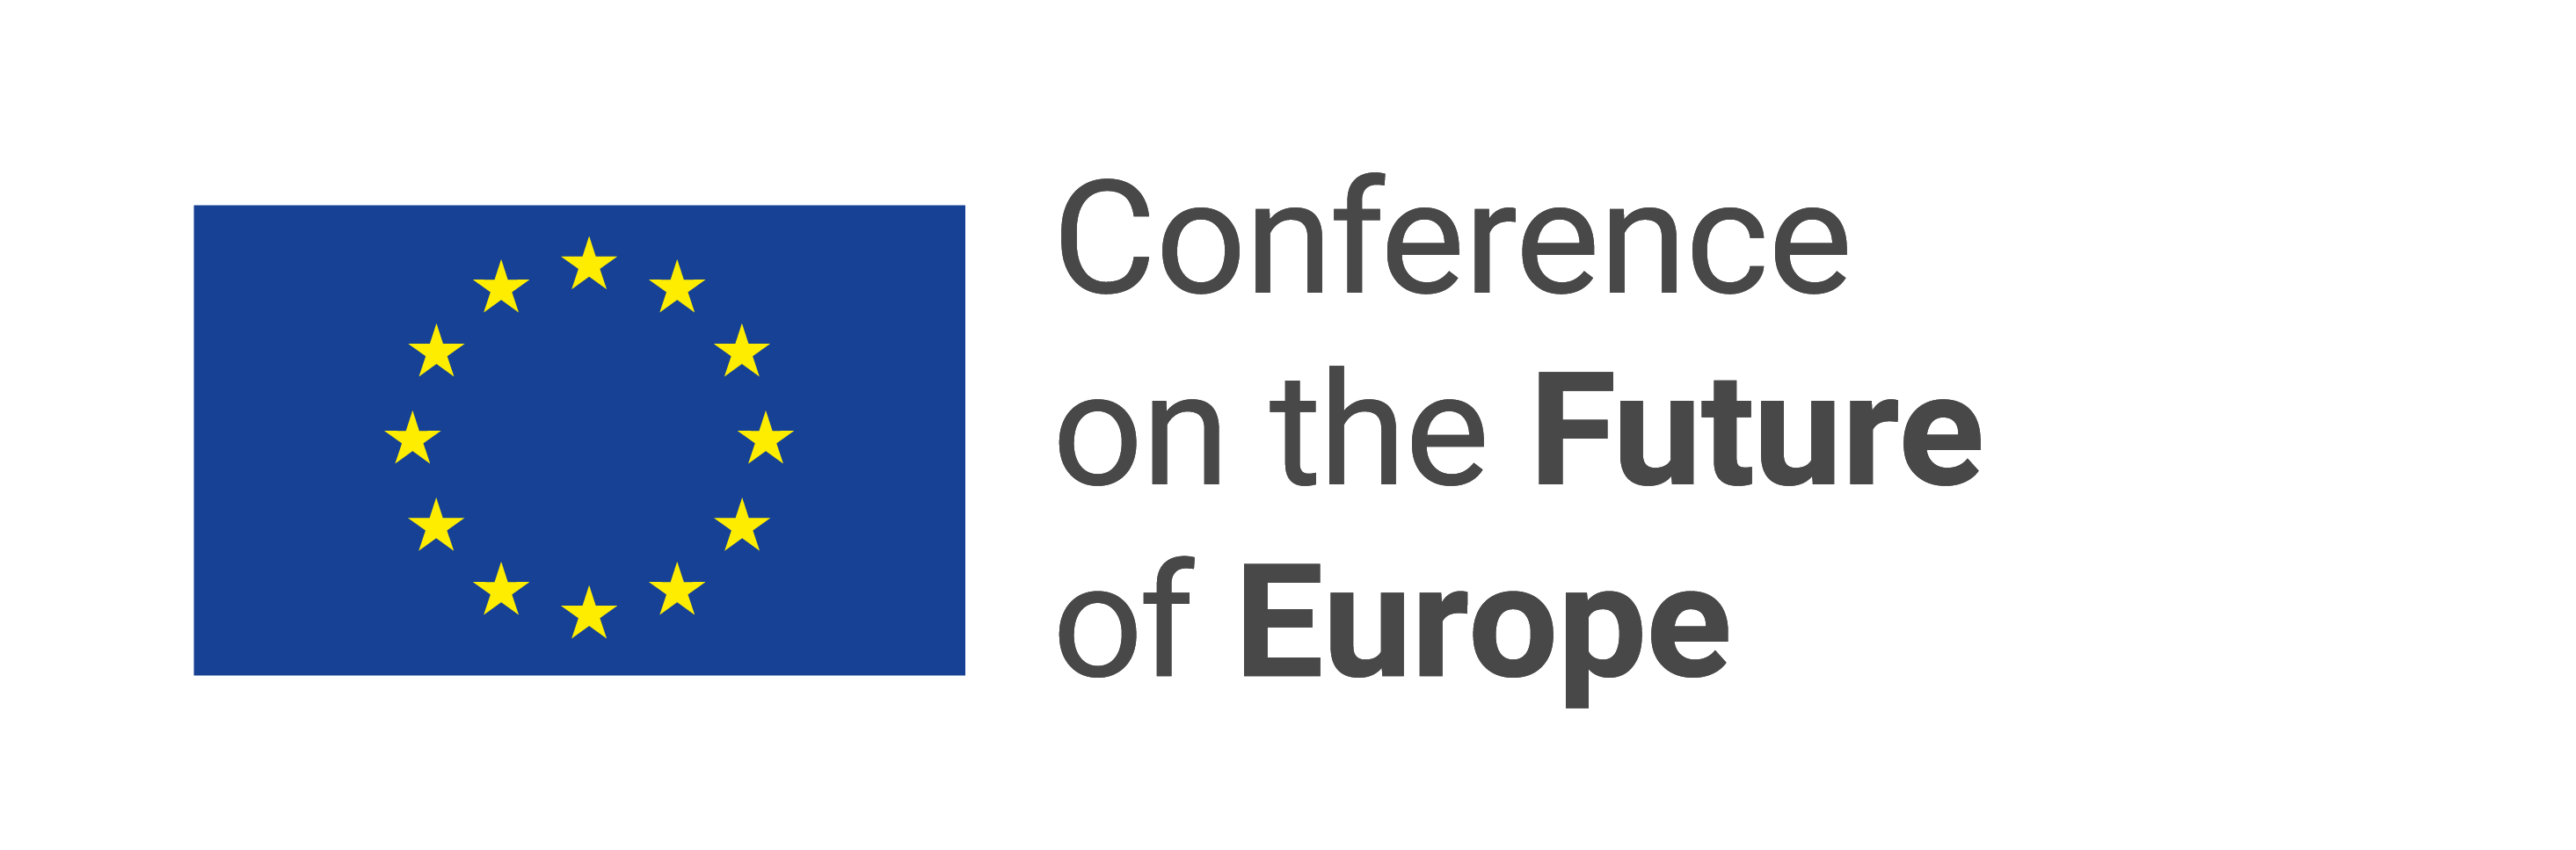 Conference on the Future of Europe